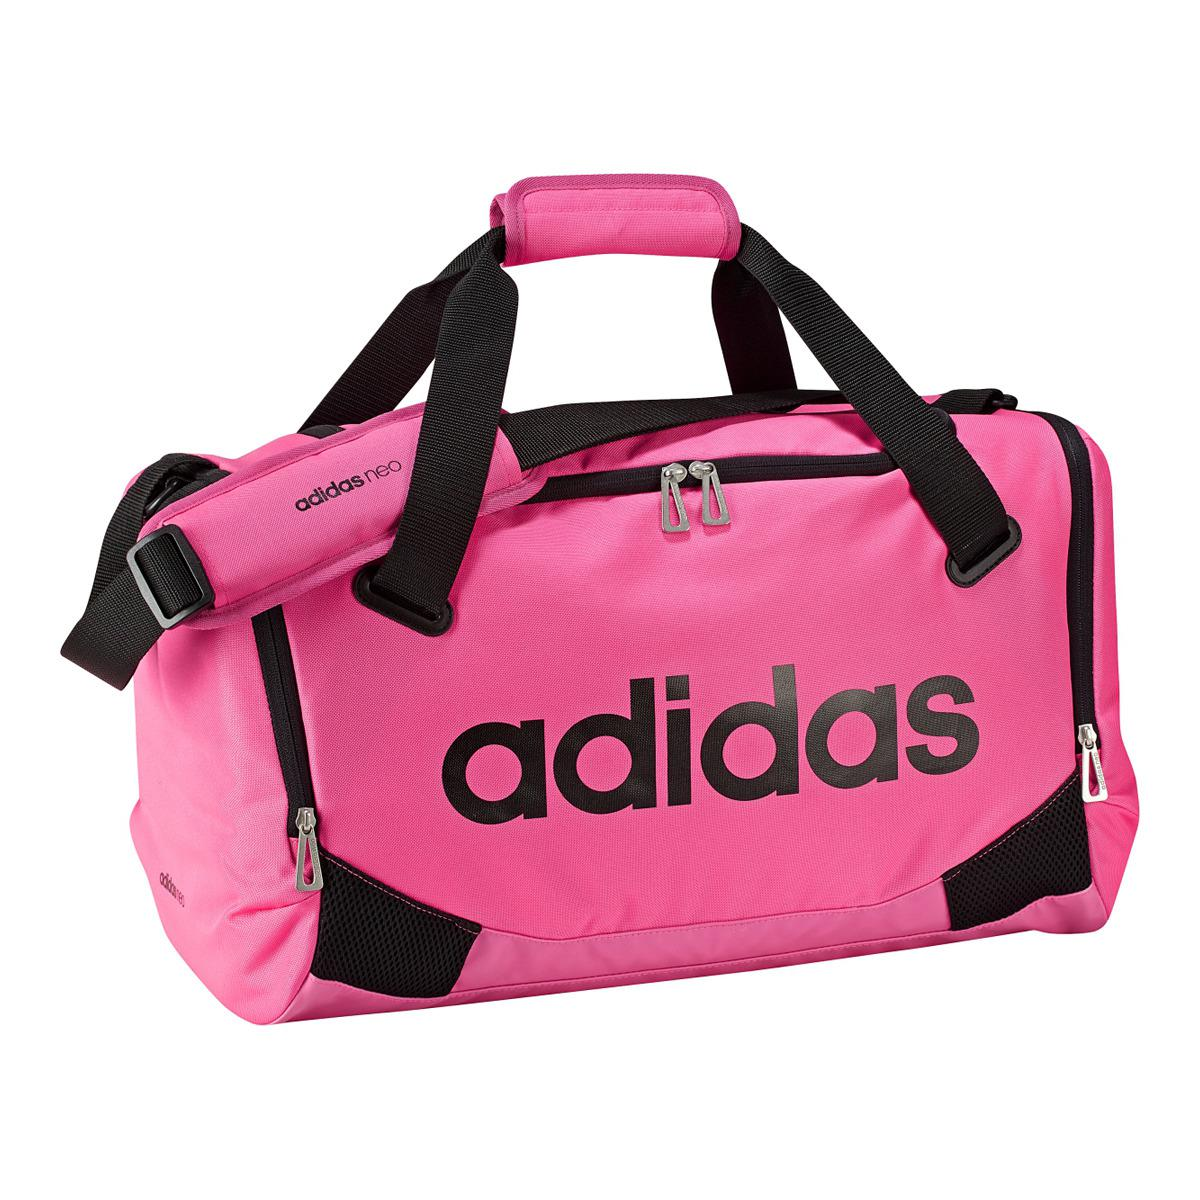 f82e4c2dbe73 Lyst - Adidas Neo Daily Sports Bag in Pink